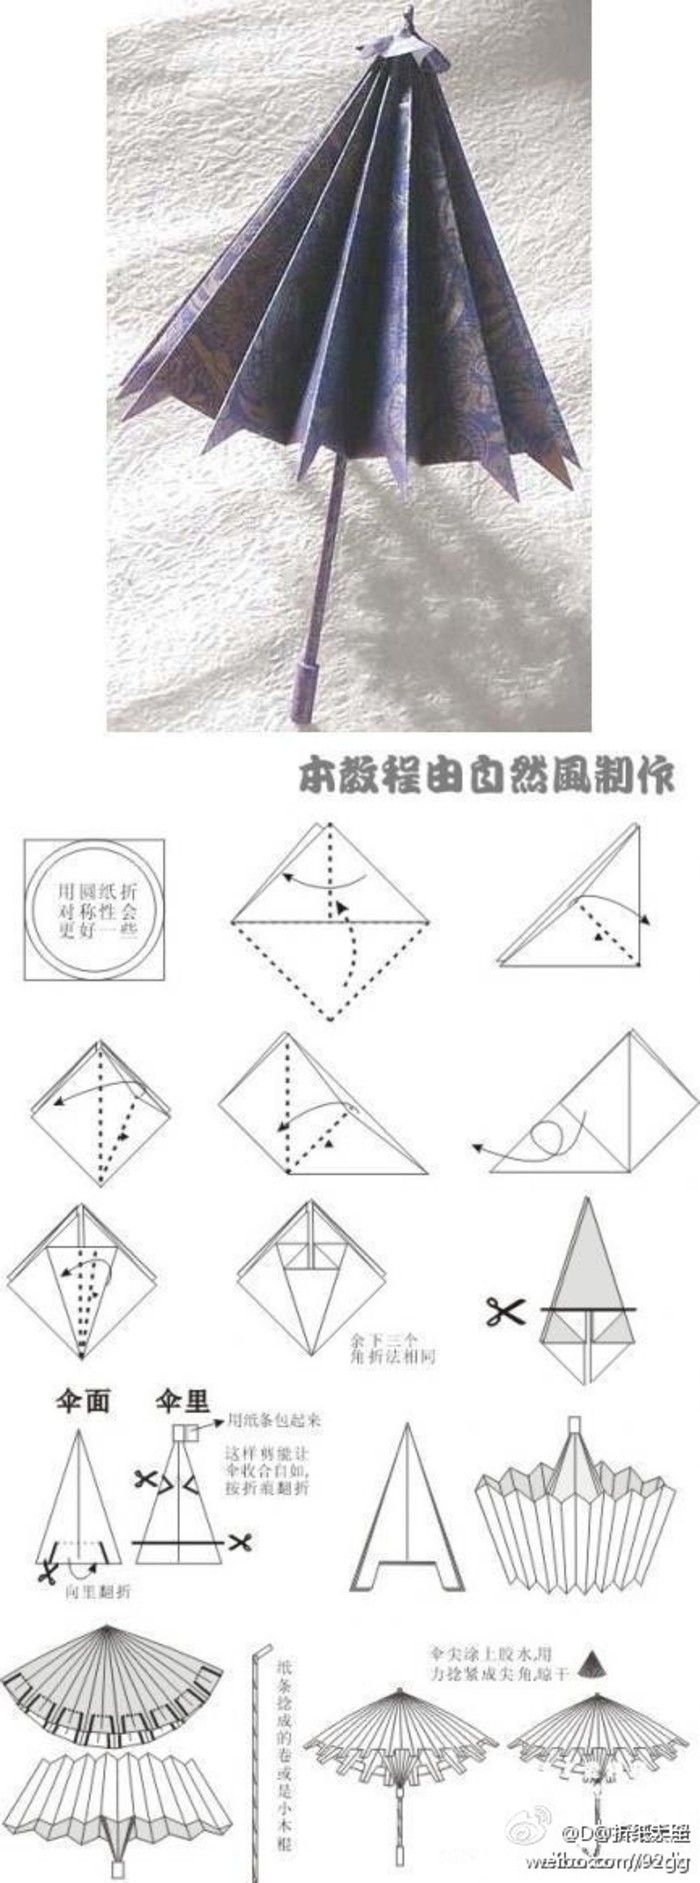 [Graphic] little paper umbrella origami tutorial produced by the natural wind ~